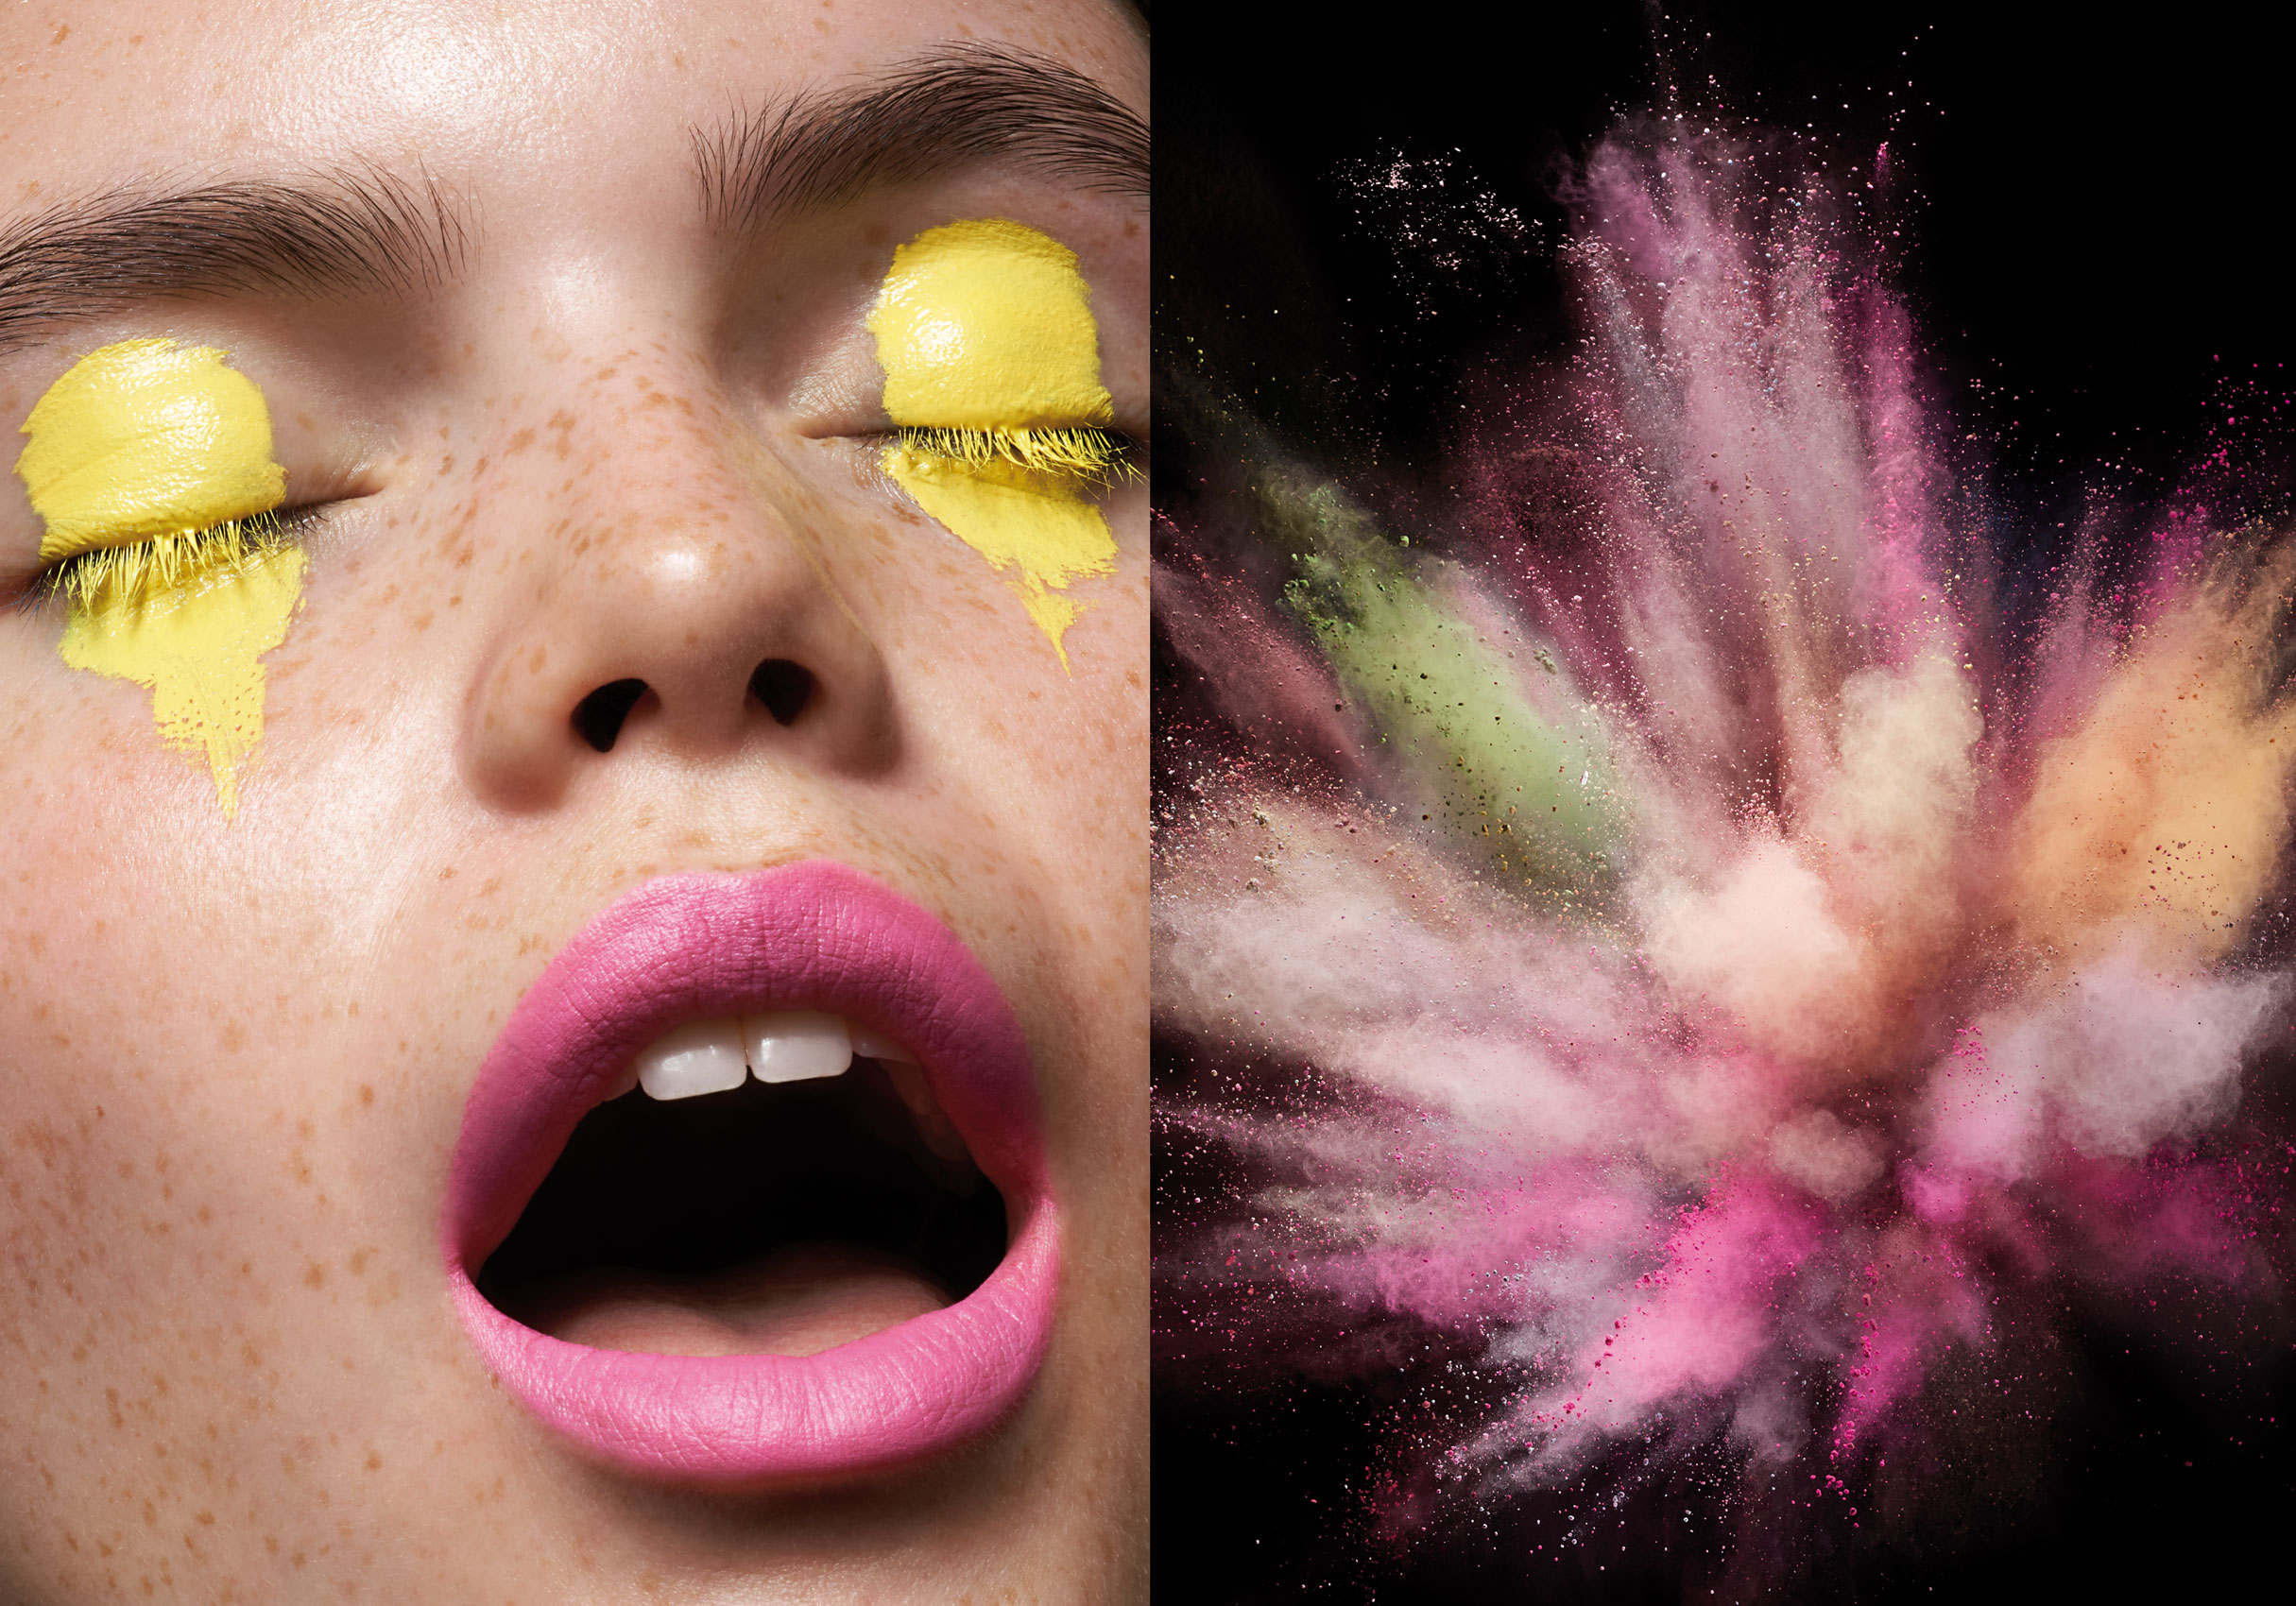 Musilek-Stan-Makeup-Yellow-Lids-Pink-Lips-Powder-Explosion-Editorial-Photographer